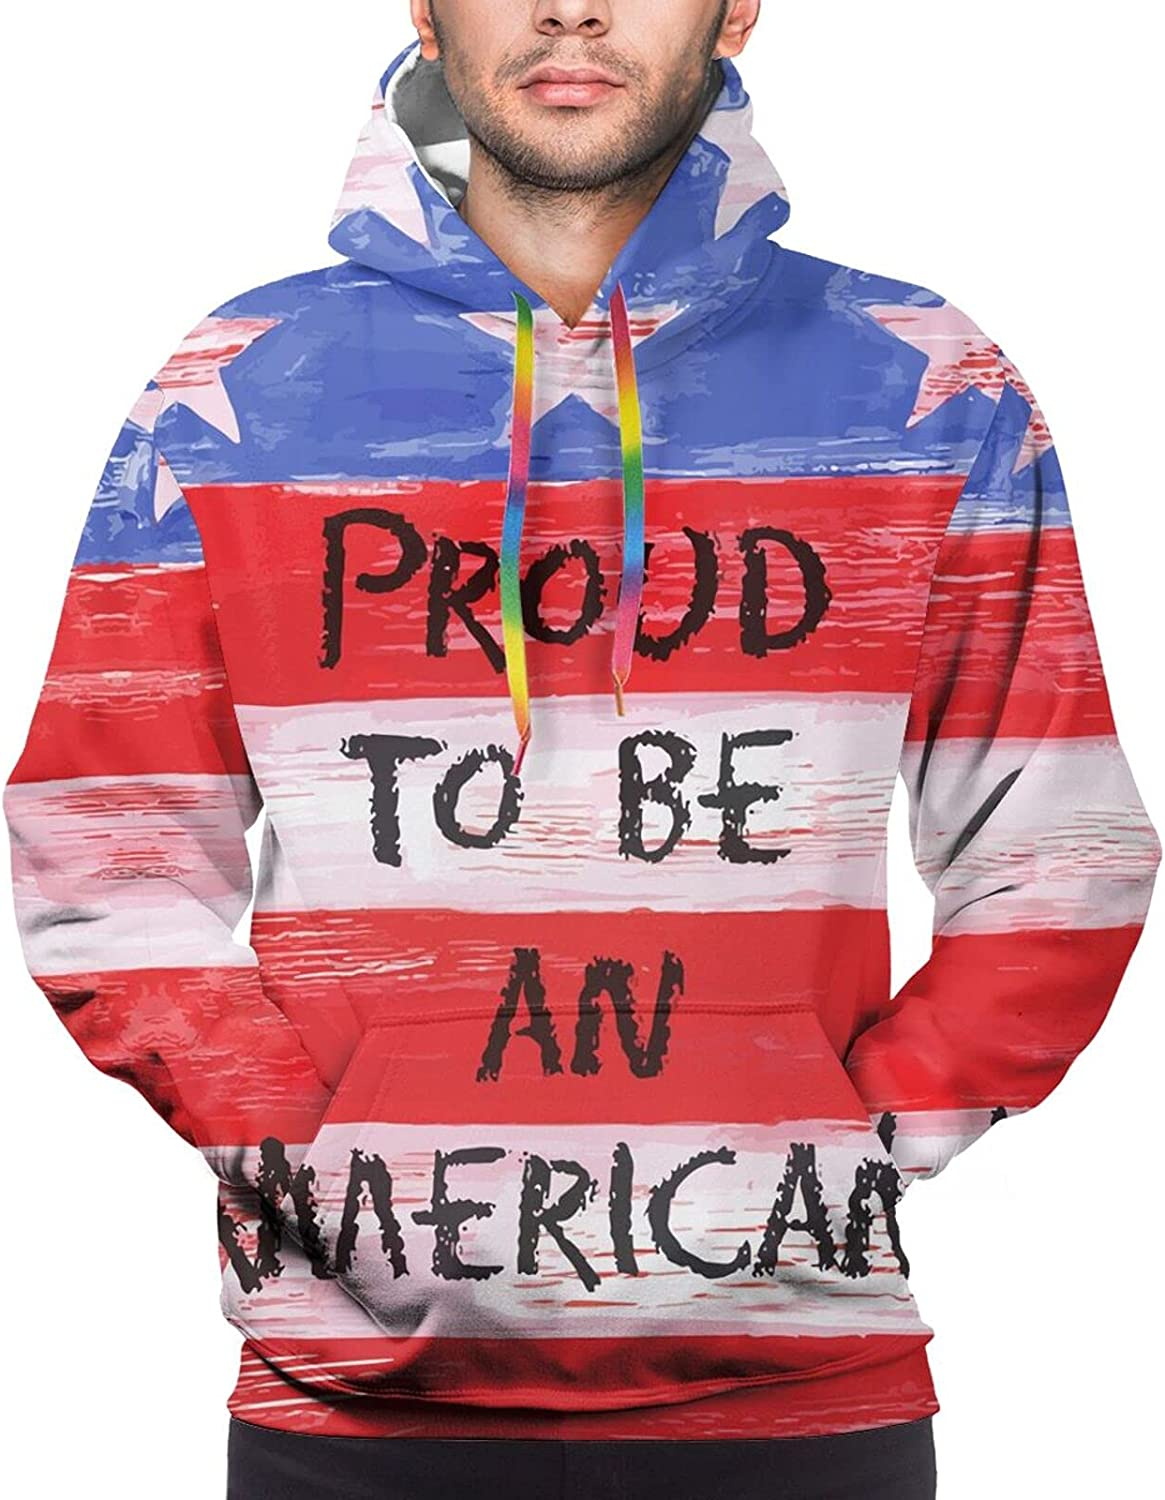 Hoodie For Men Women Unisex Proud To Be An American Hoodies Outdoor Sports Sweater